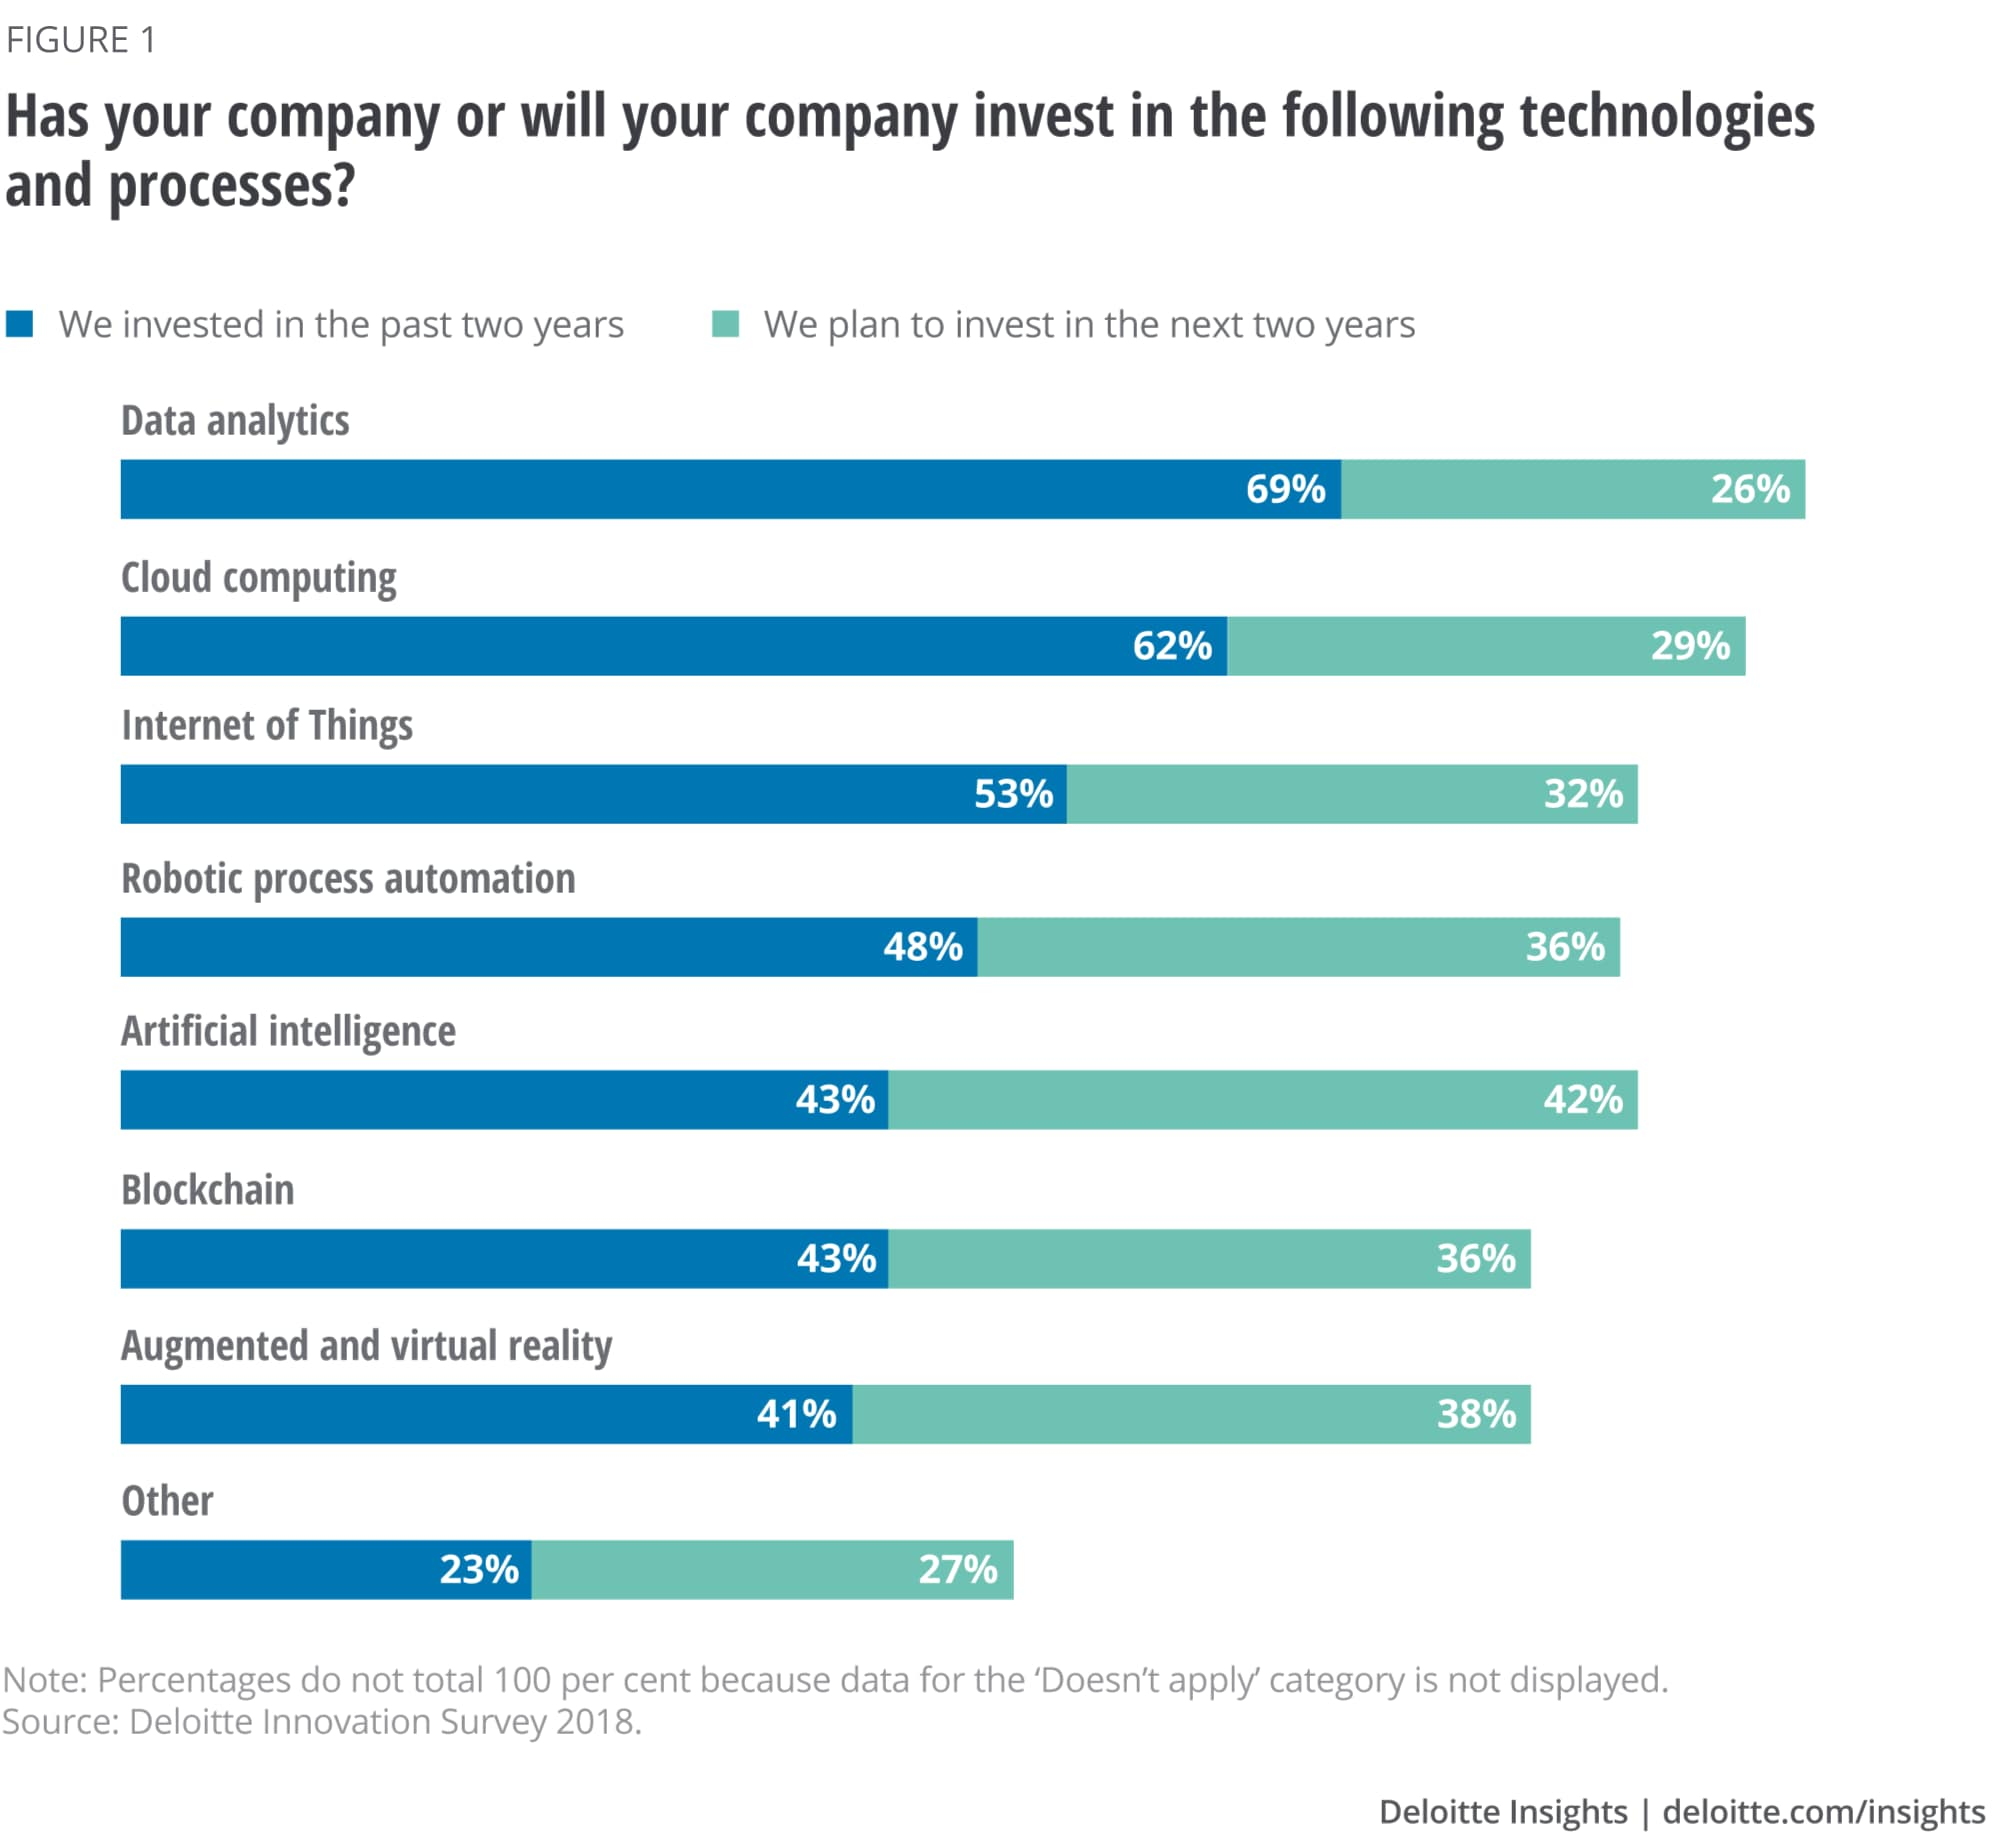 Has your company or will your company invest in the following technologies and processes?